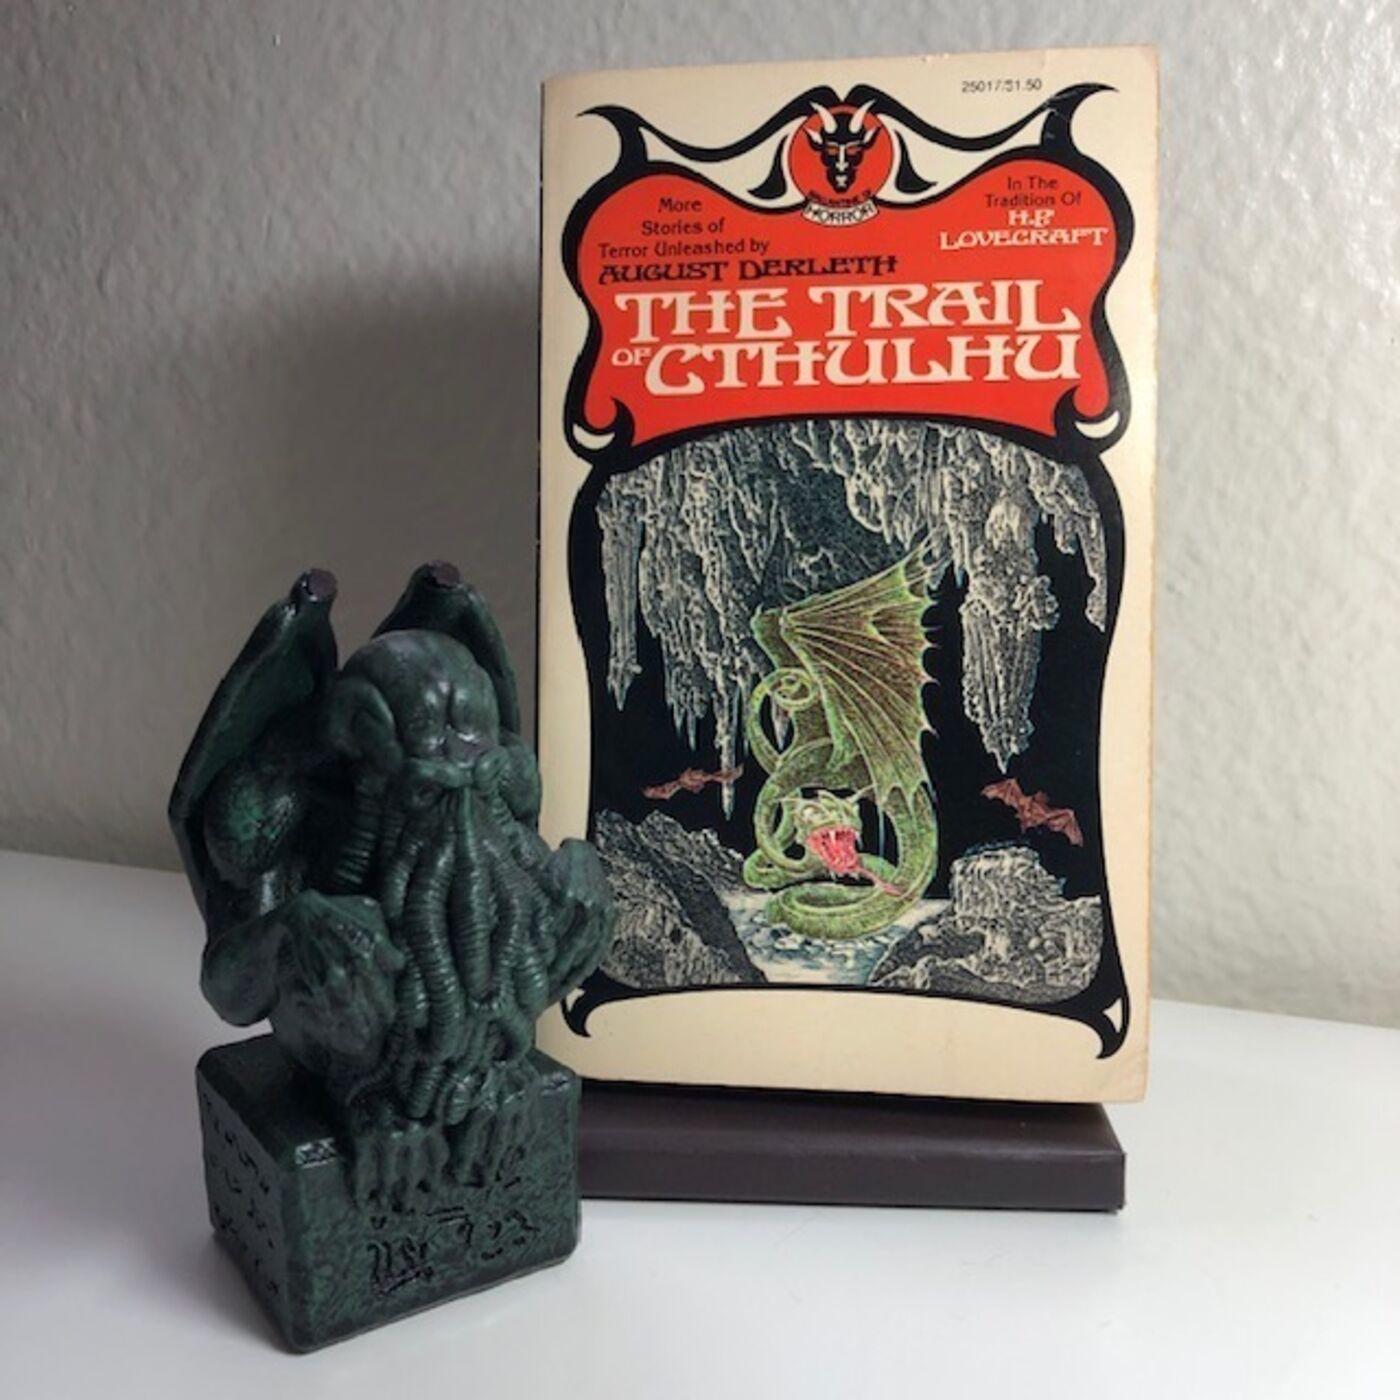 Ep 37 - August Derleth's The Trail of Cthulhu